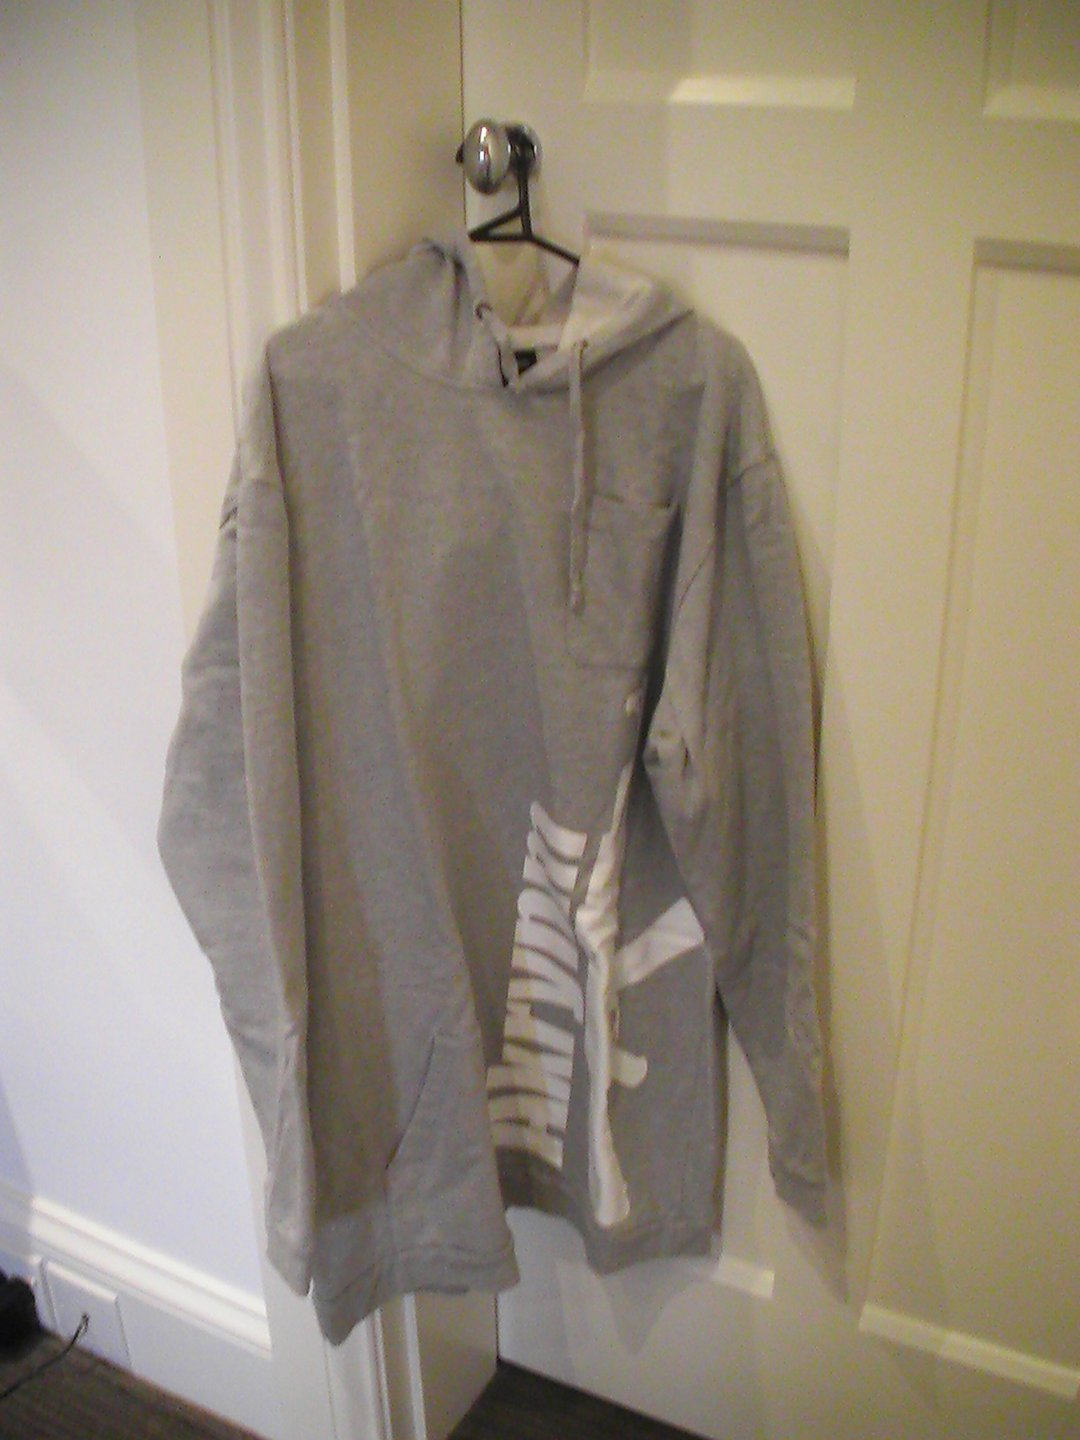 FOR SALE: AKRYNM TALL HOODIE